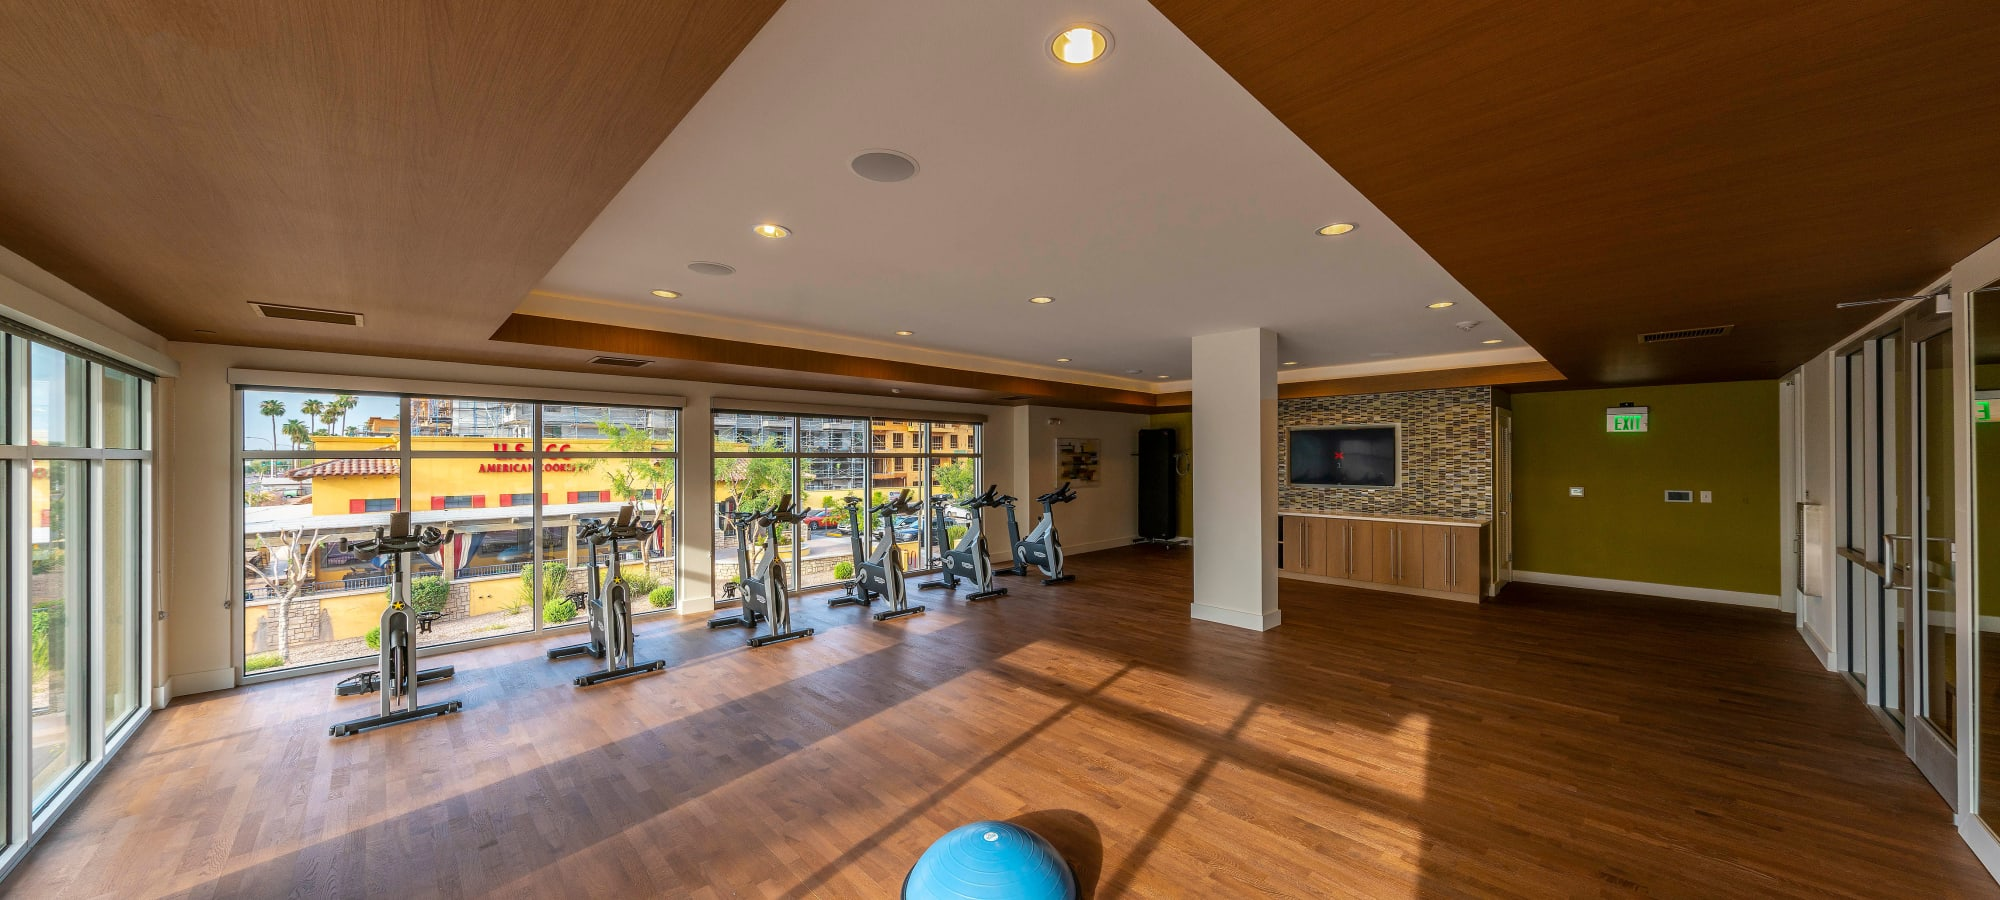 Spin class room at Carter in Scottsdale, Arizona